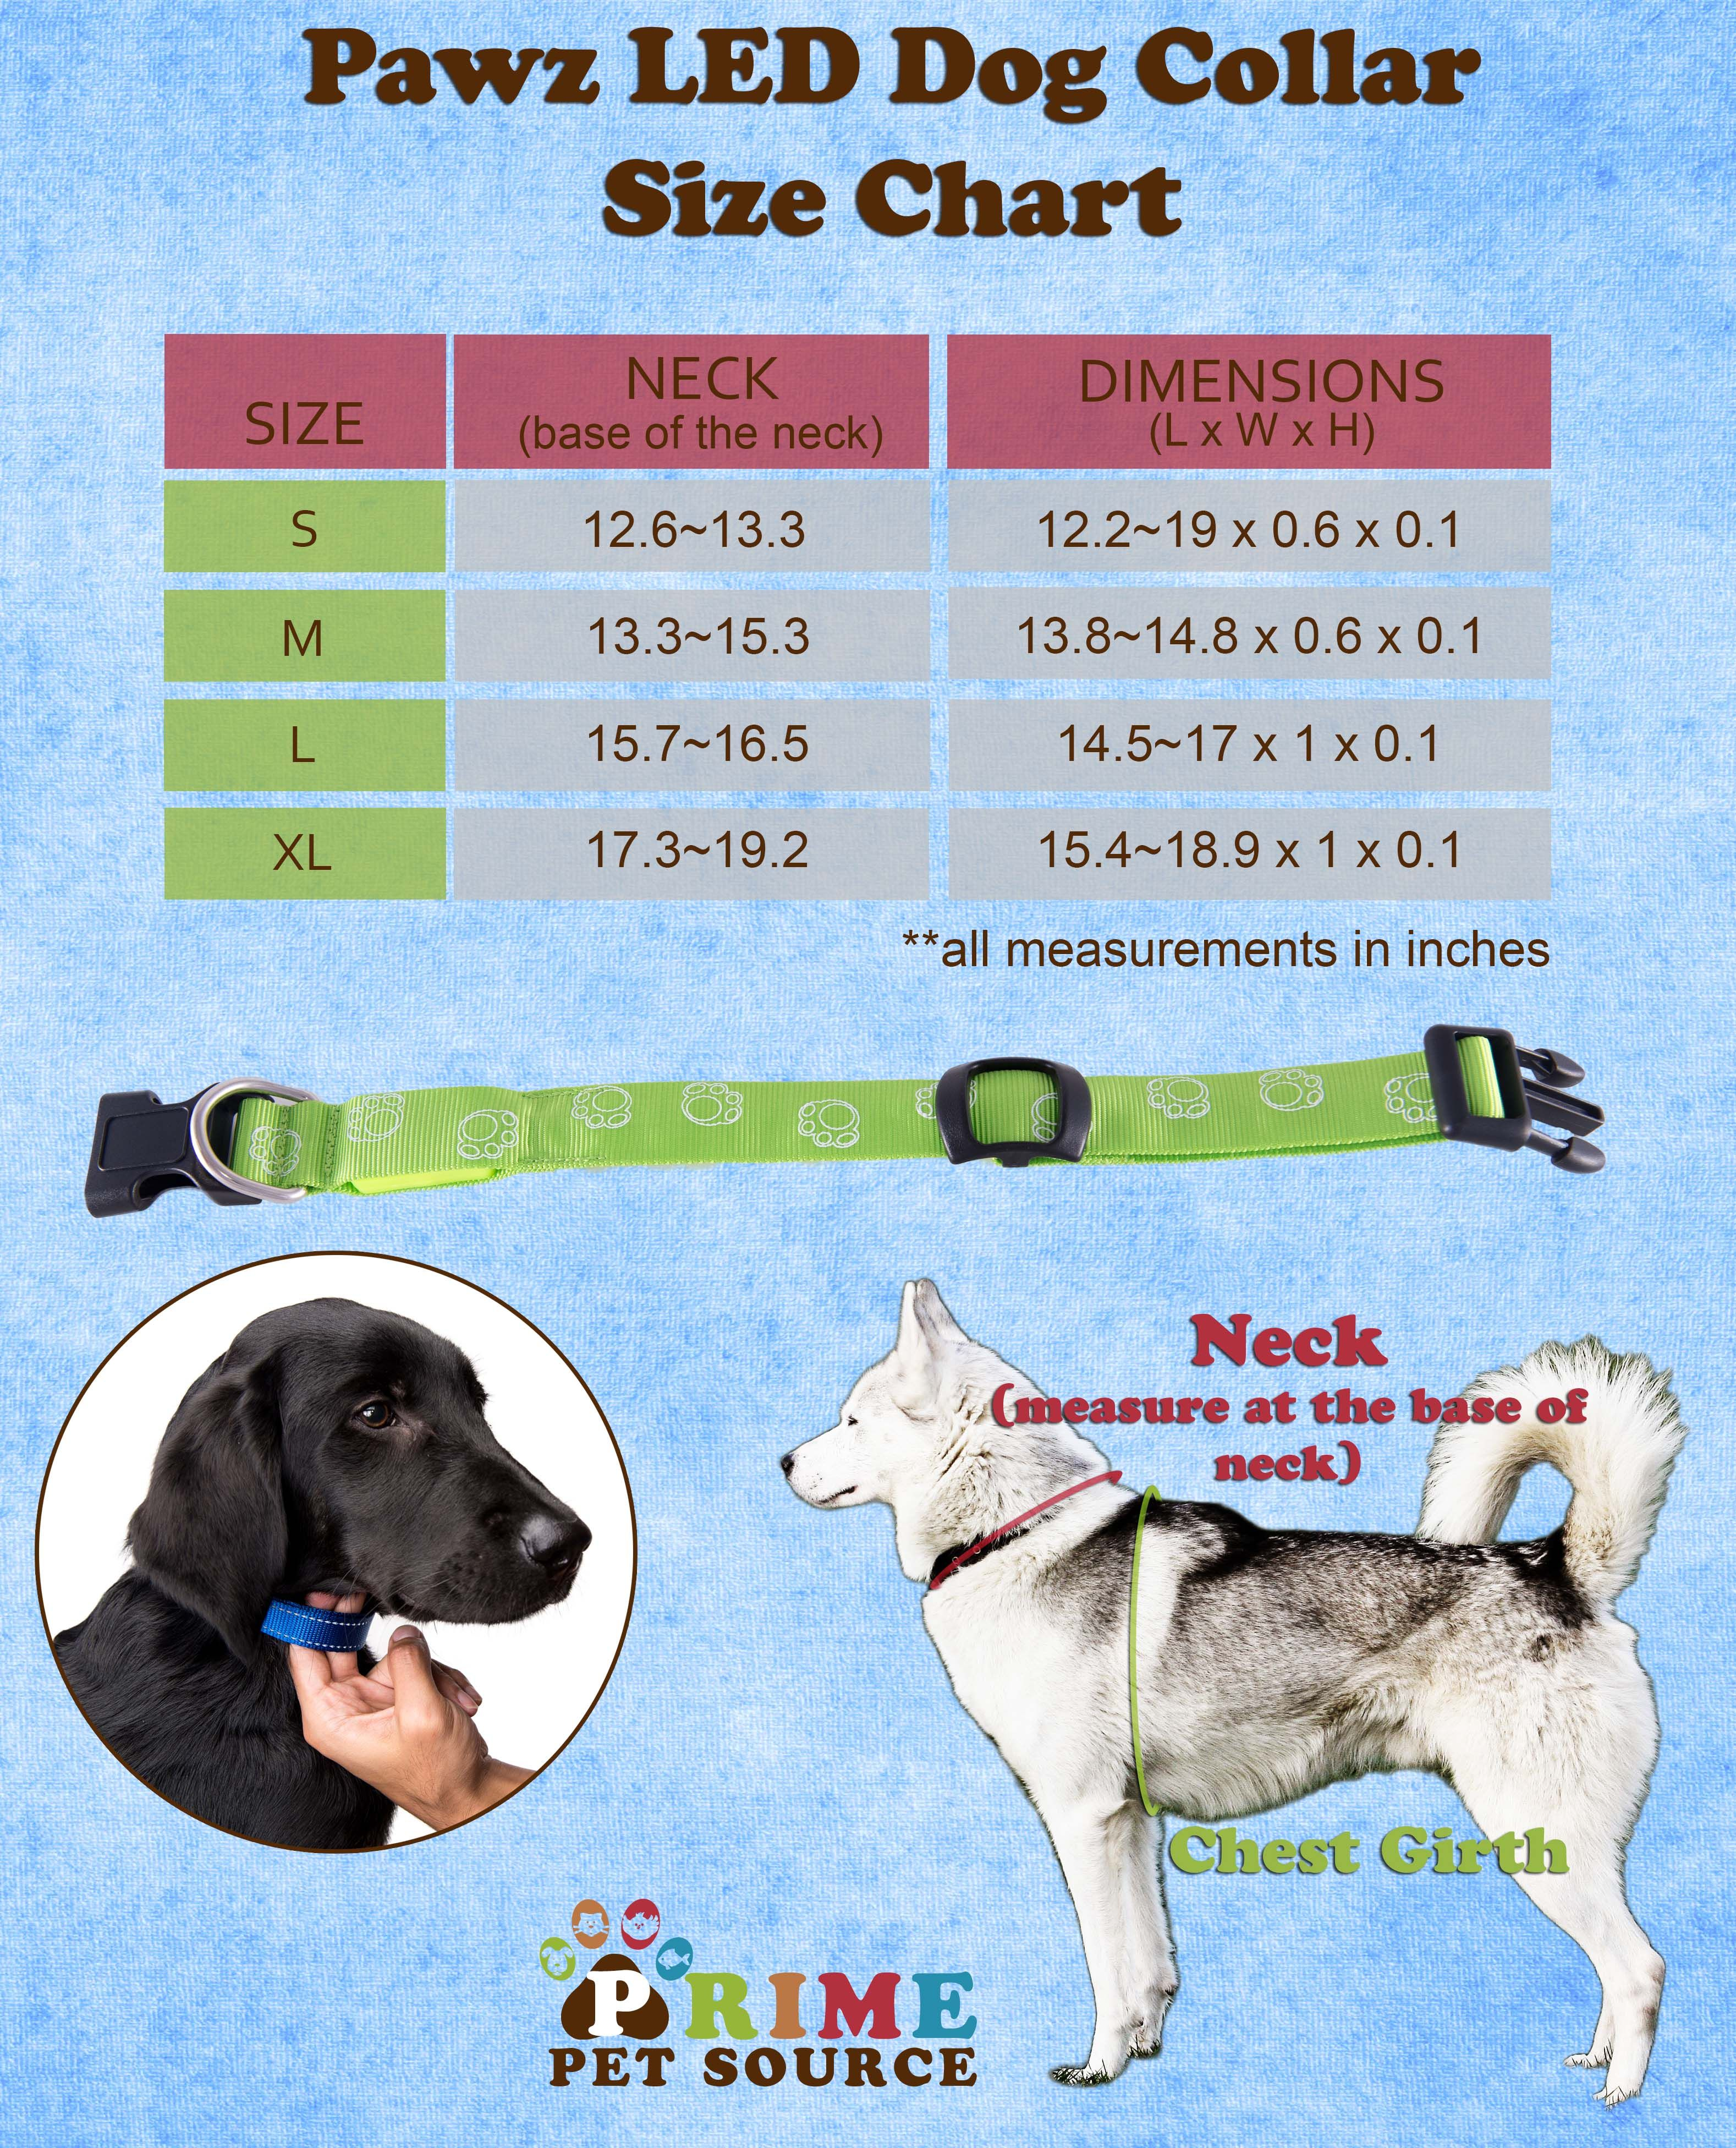 Don't let the dark stop your pup from shinning! Pick up a fun, LED light up collar from Prime Pet Source! http://www.amazon.com/Nighttime-Visibility-Prime-Pet-Source/dp/B00KMCMCPC